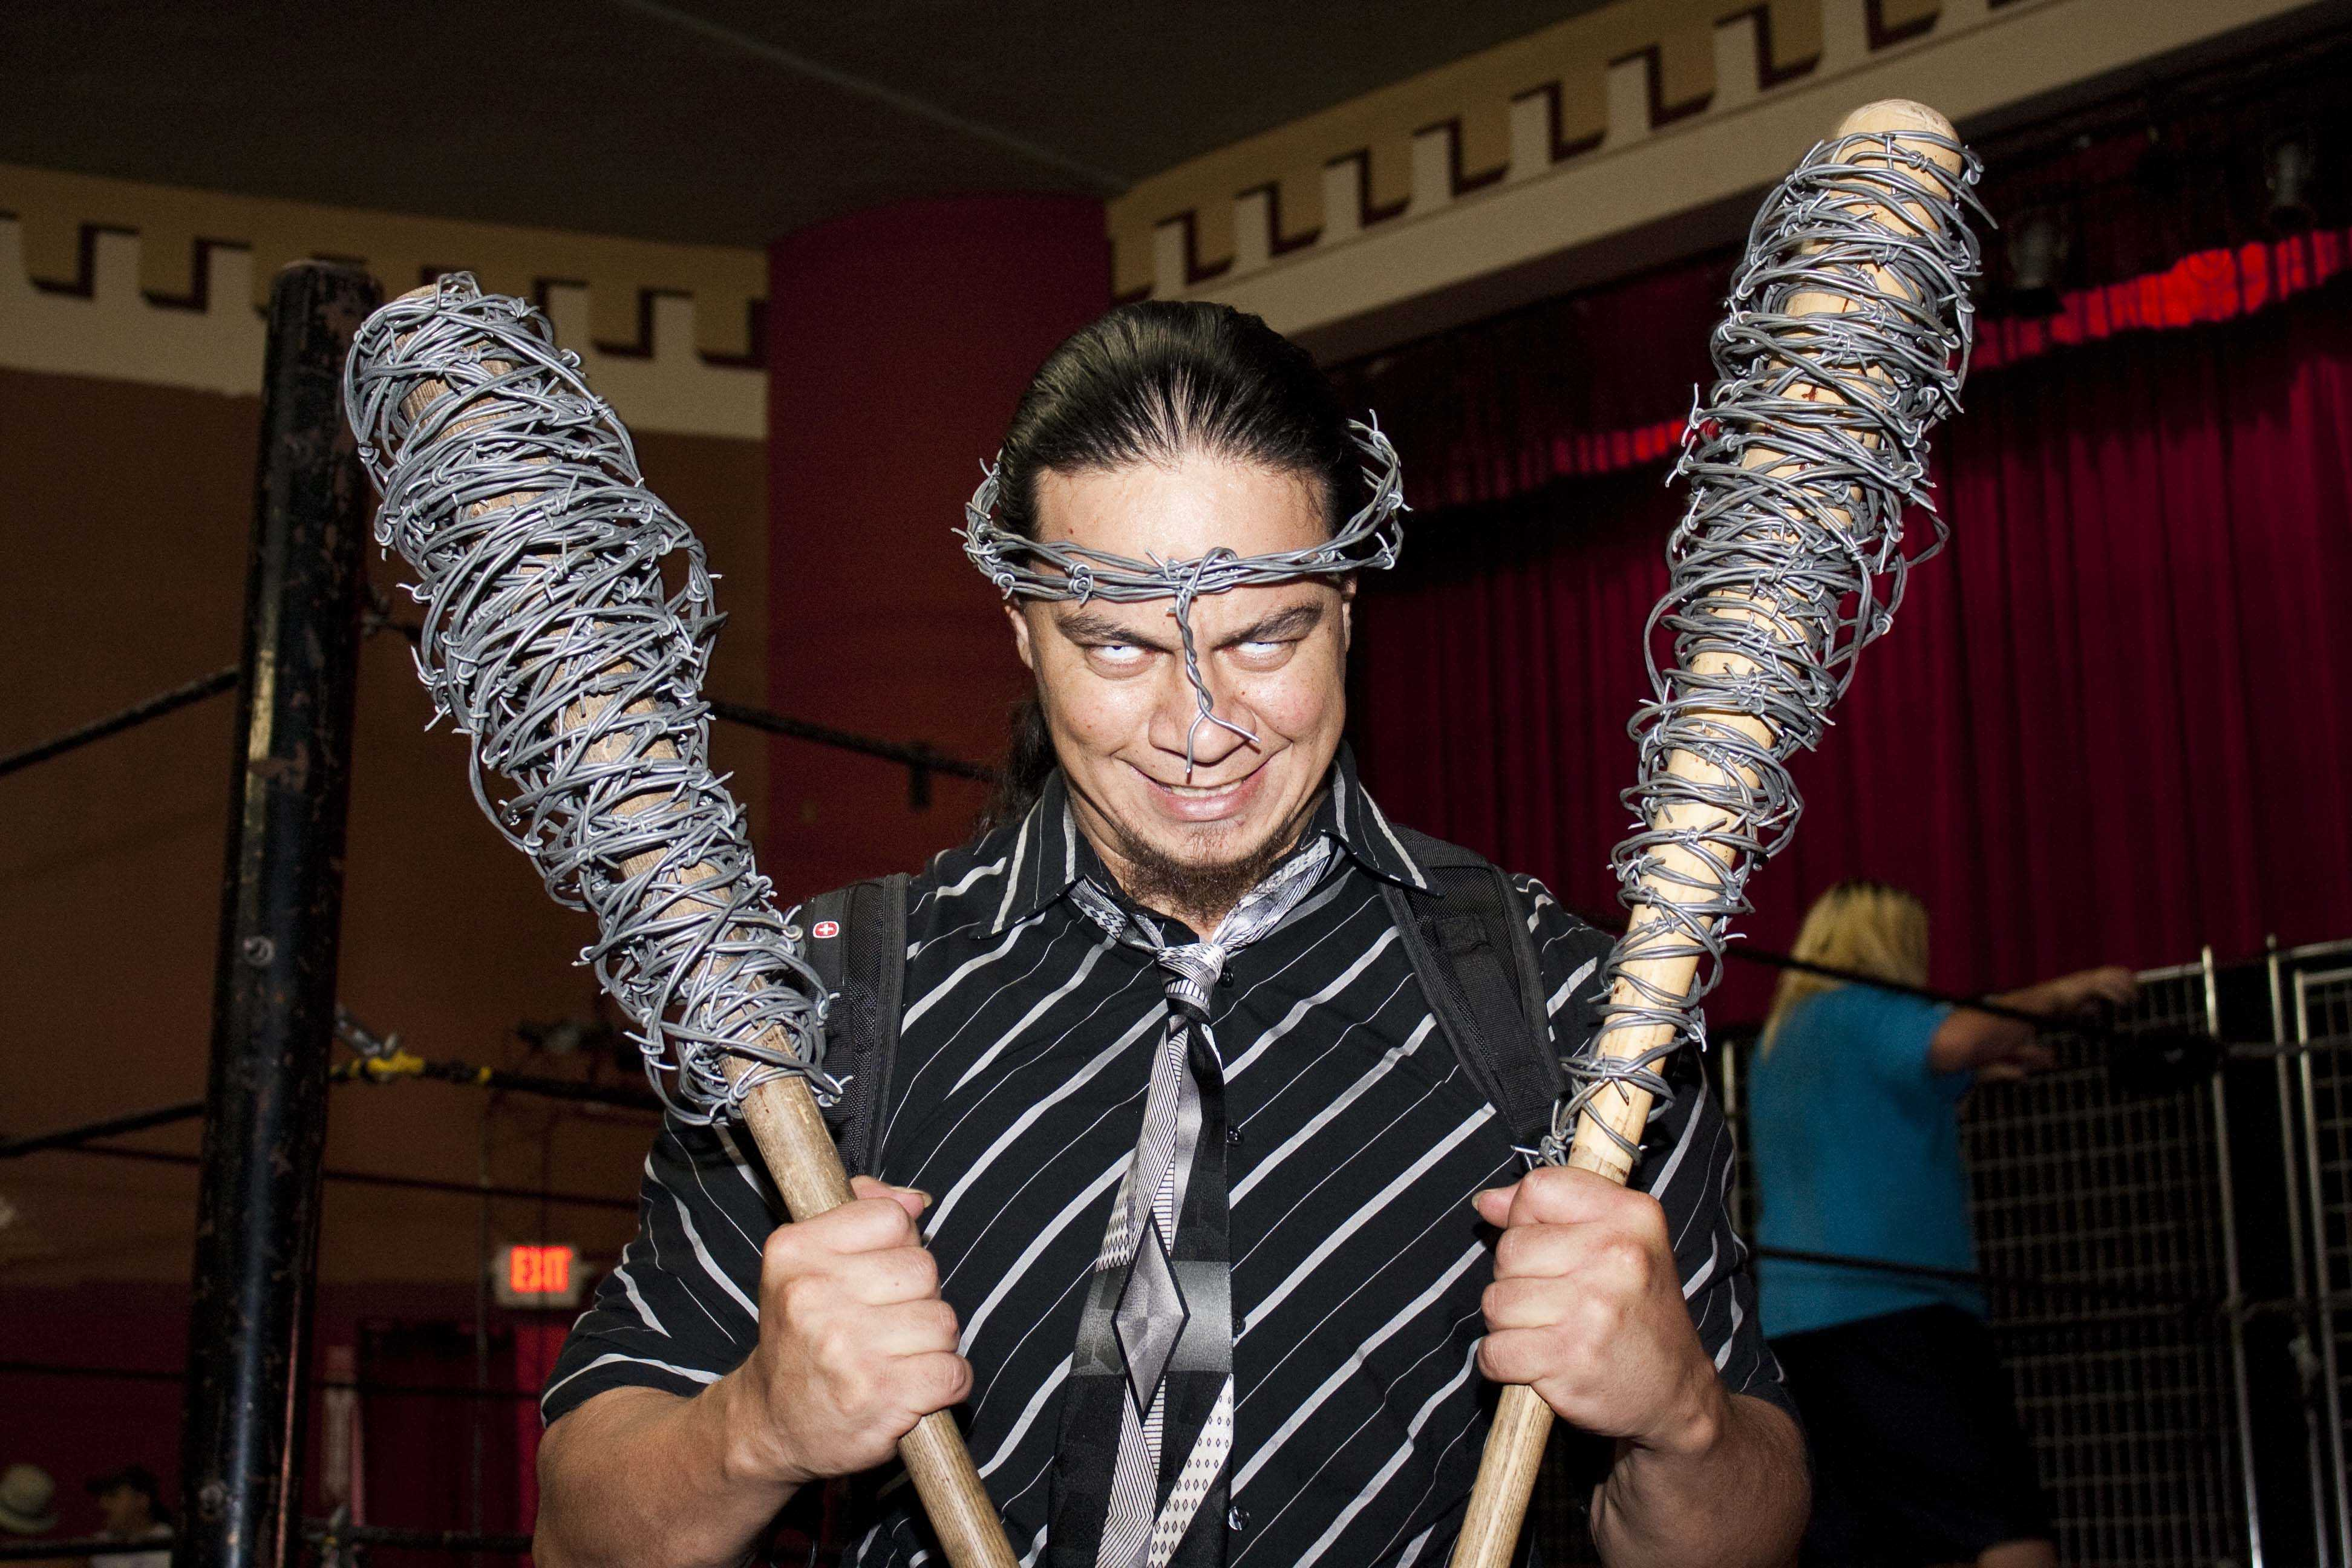 Ron Ruffio, a professional wrestler for the TWF, holds his bats wrapped with barbed wire and wears a barbed wire crown. (Photo by Bryce Fraser)